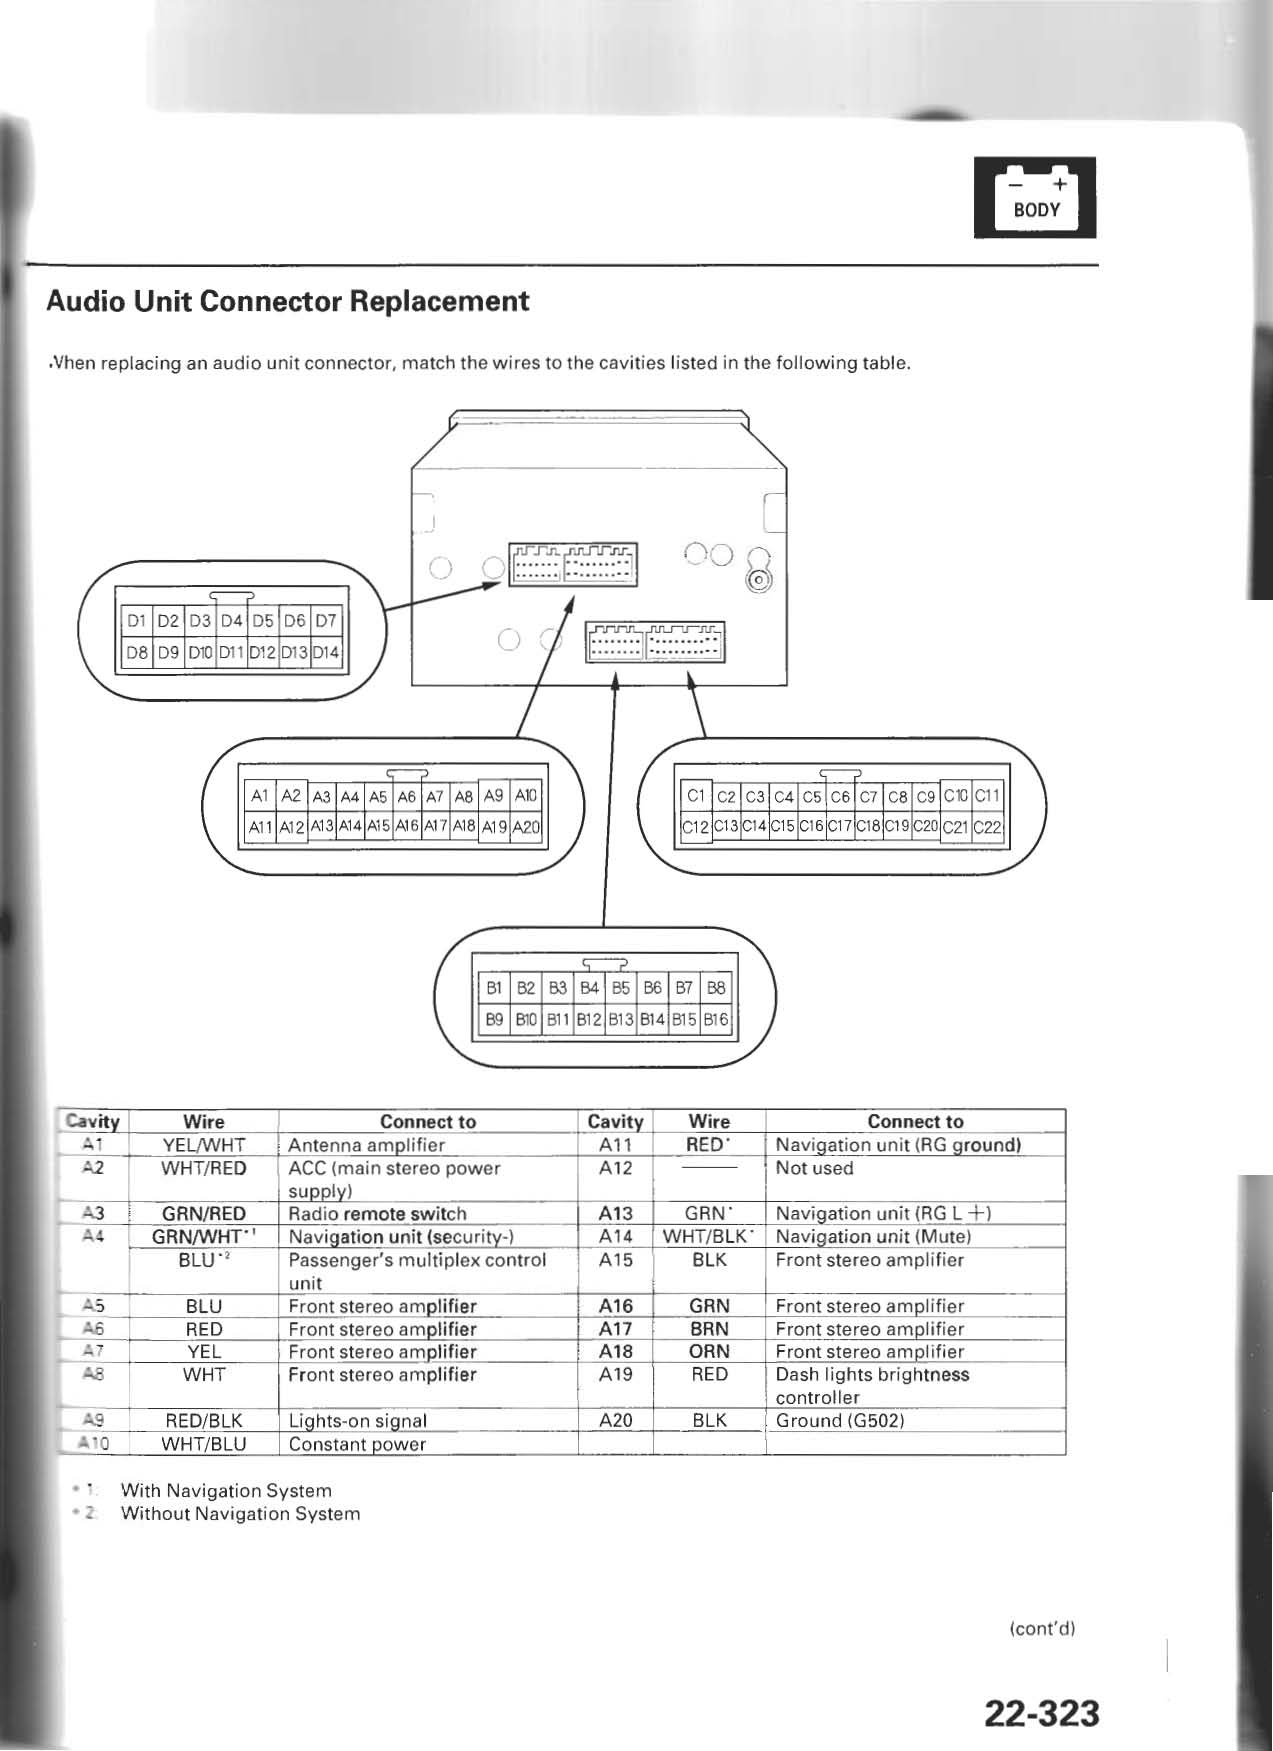 30384d1111169775 retrofit 01 04 mdx w bluetooth outs 2003 mdx radio retrofit 01 04 mdx w bluetooth page 2 acura mdx forum acura 2005 acura mdx stereo wiring diagram at aneh.co